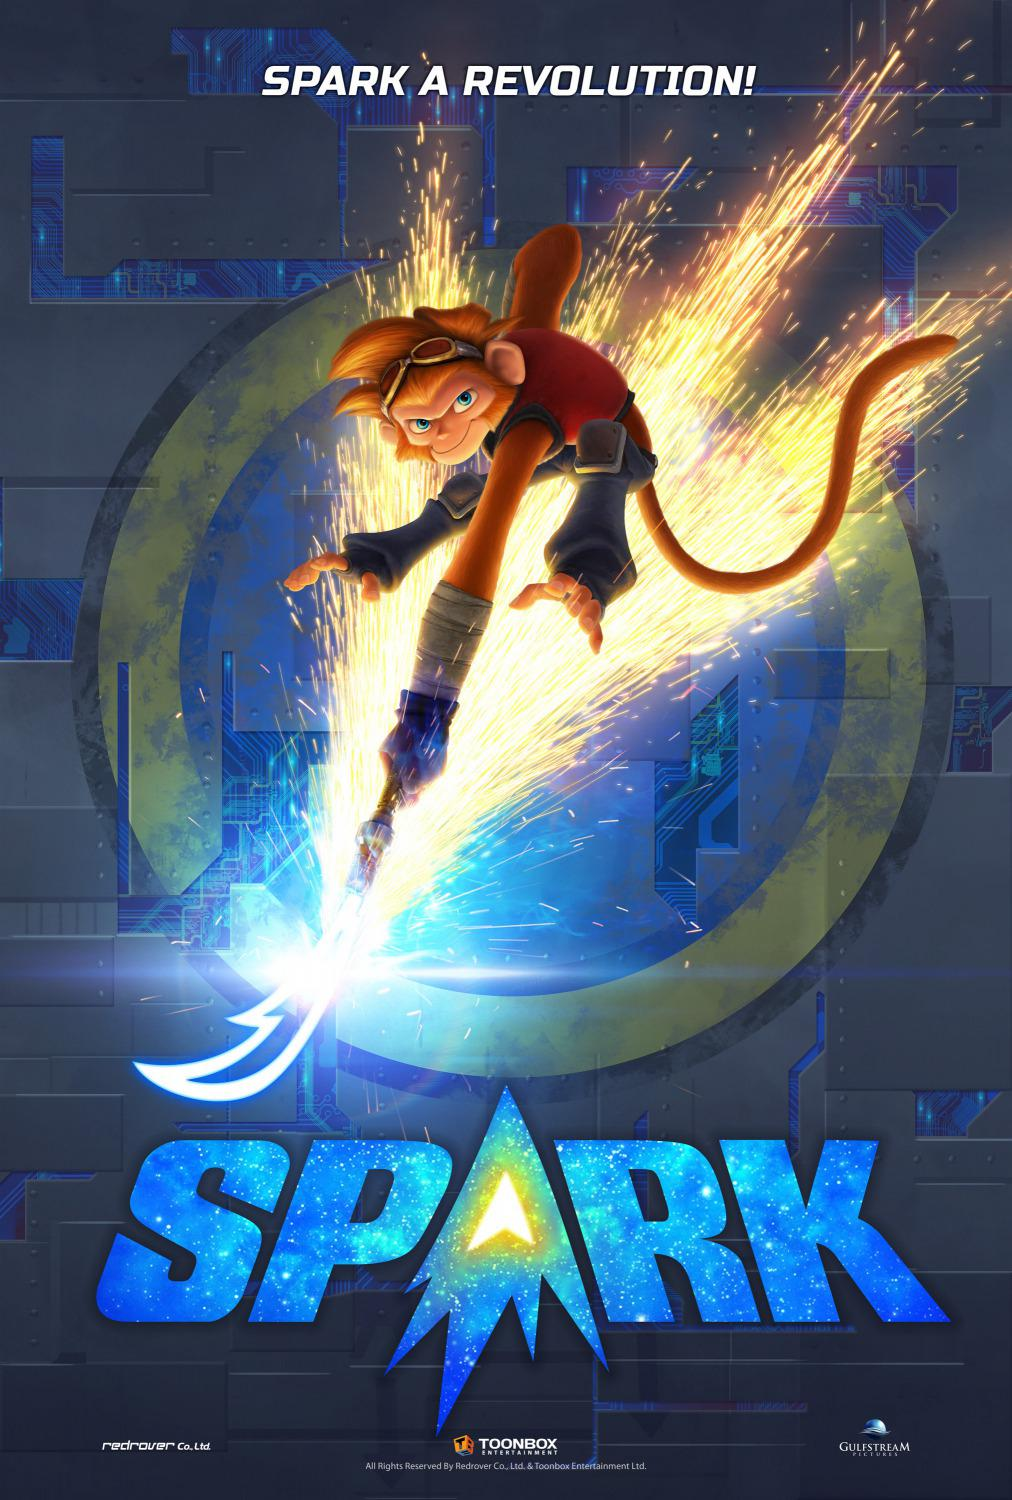 Spark a Space Tail - poster